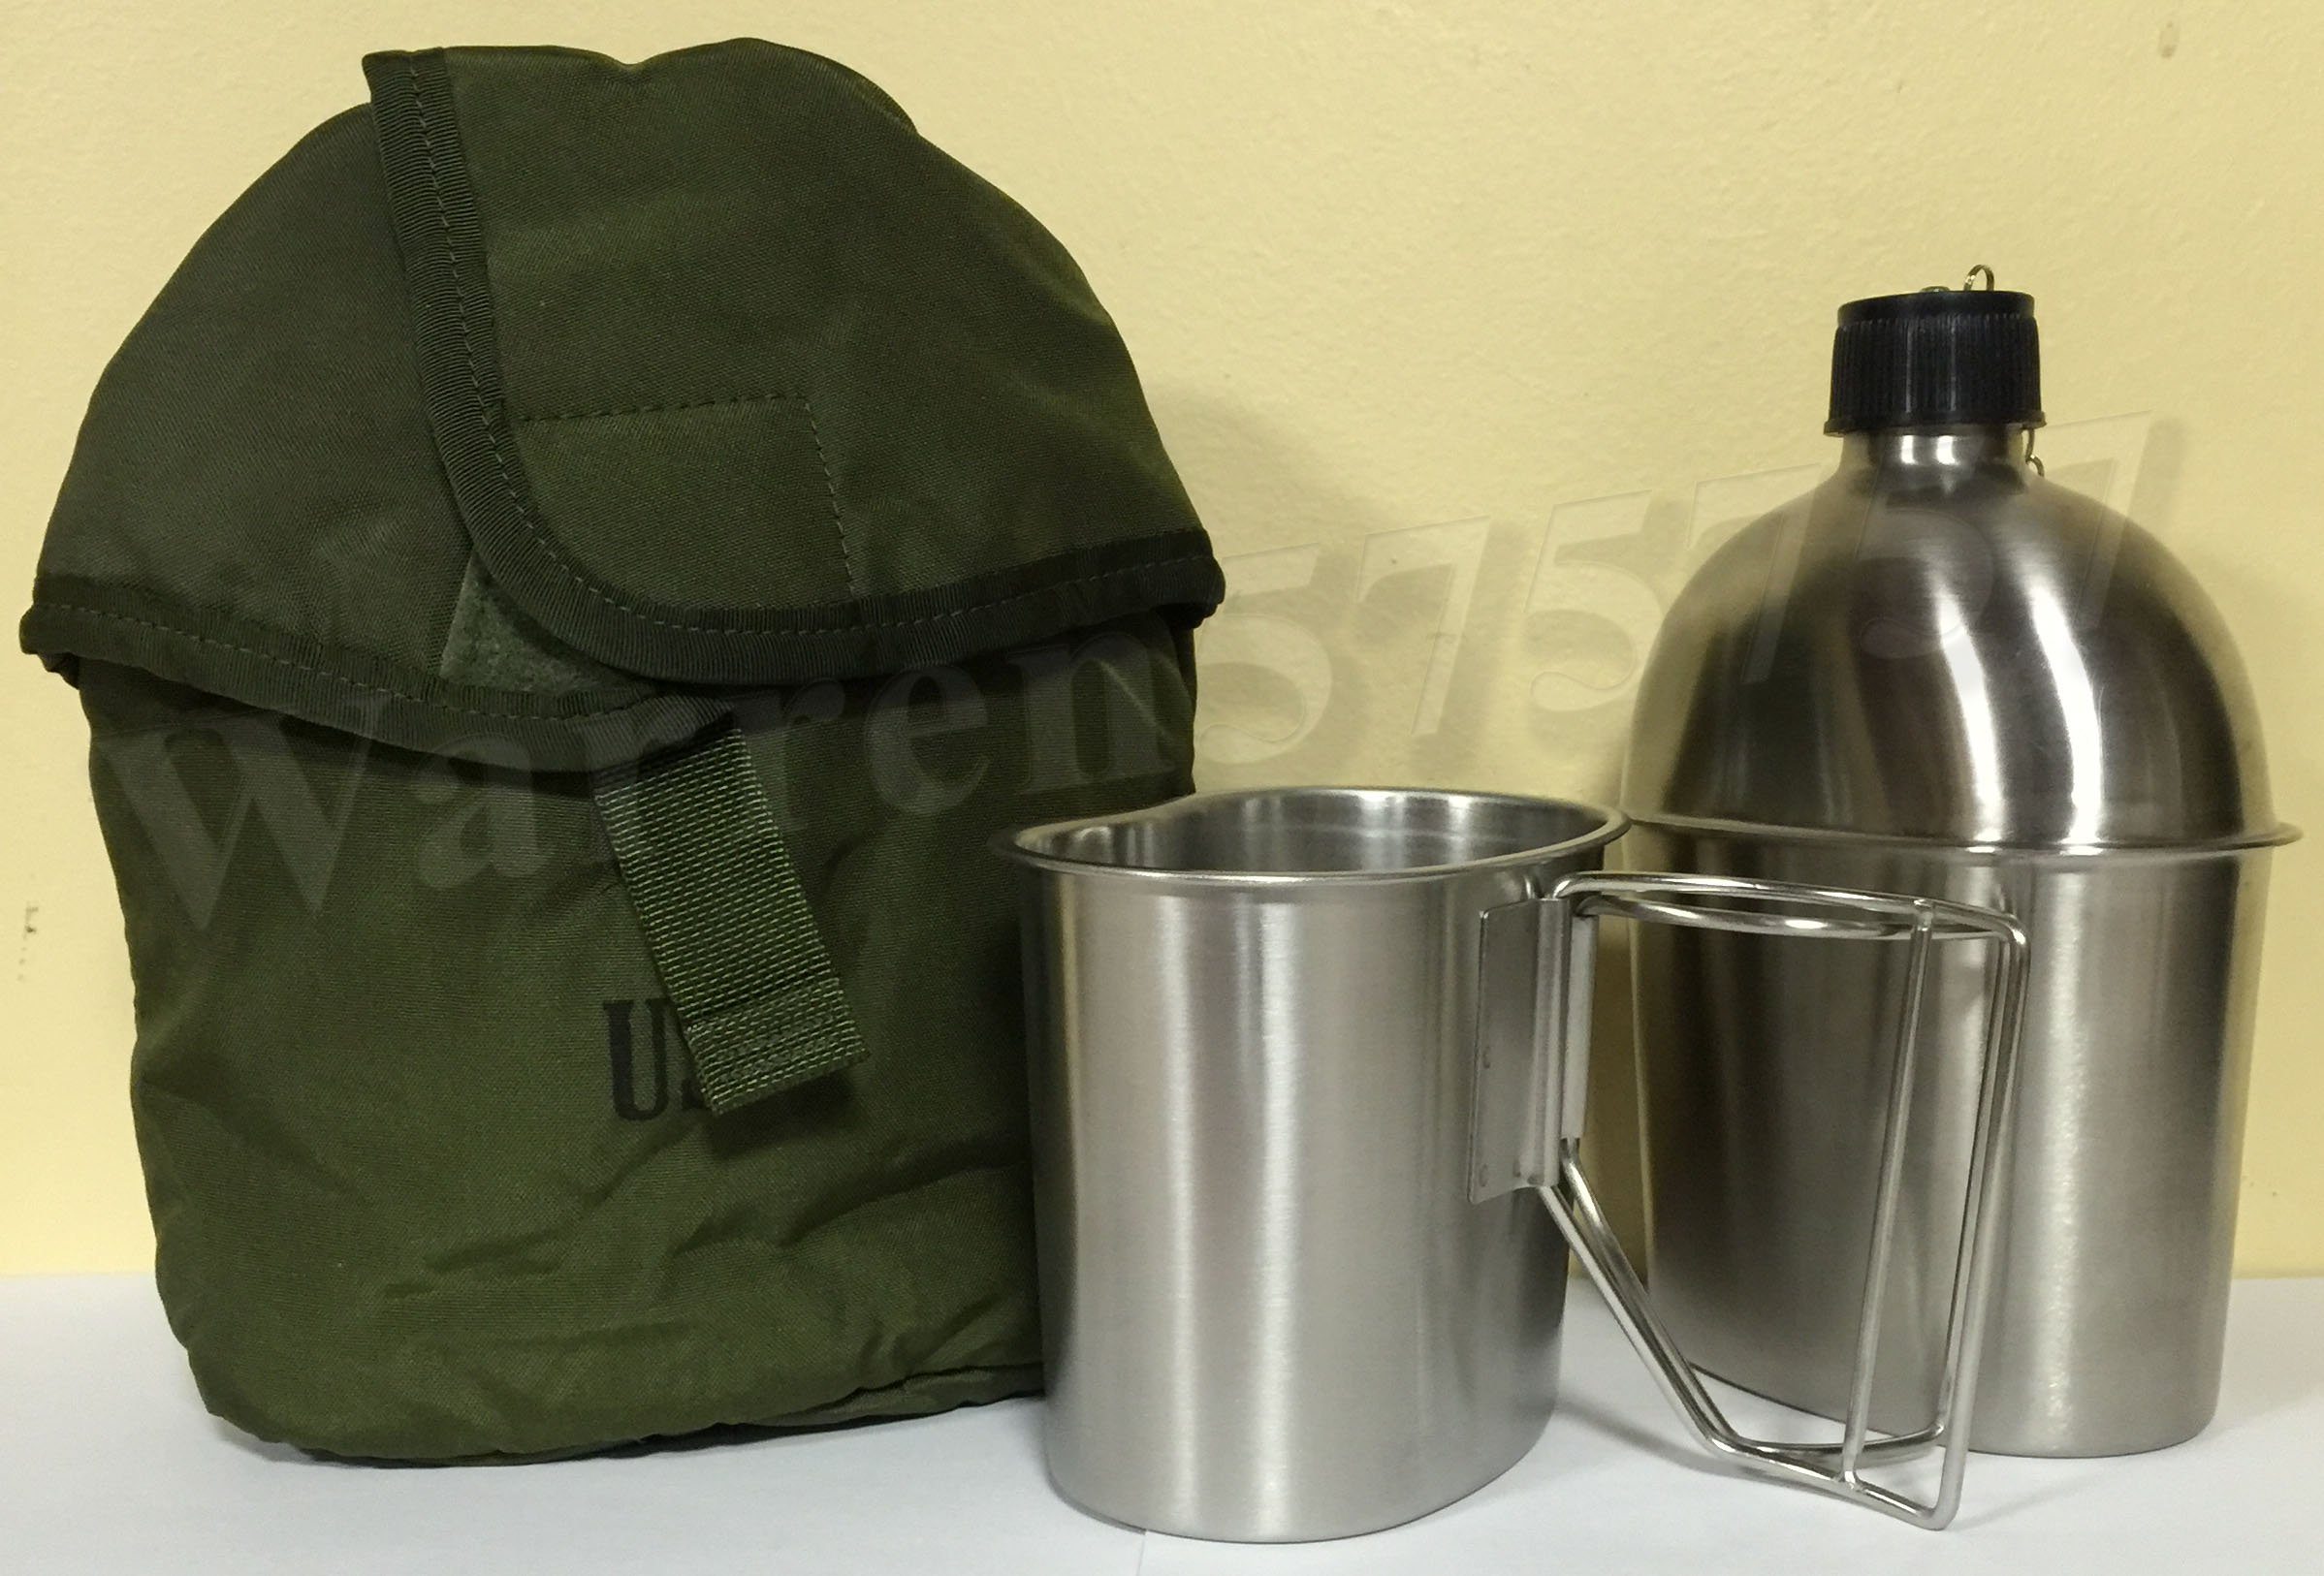 G.I. Style Stainless Steel 1qt. Canteen with Cup. And Surplus G.I. Issue Olive Drab Nylon Canteen Cover.